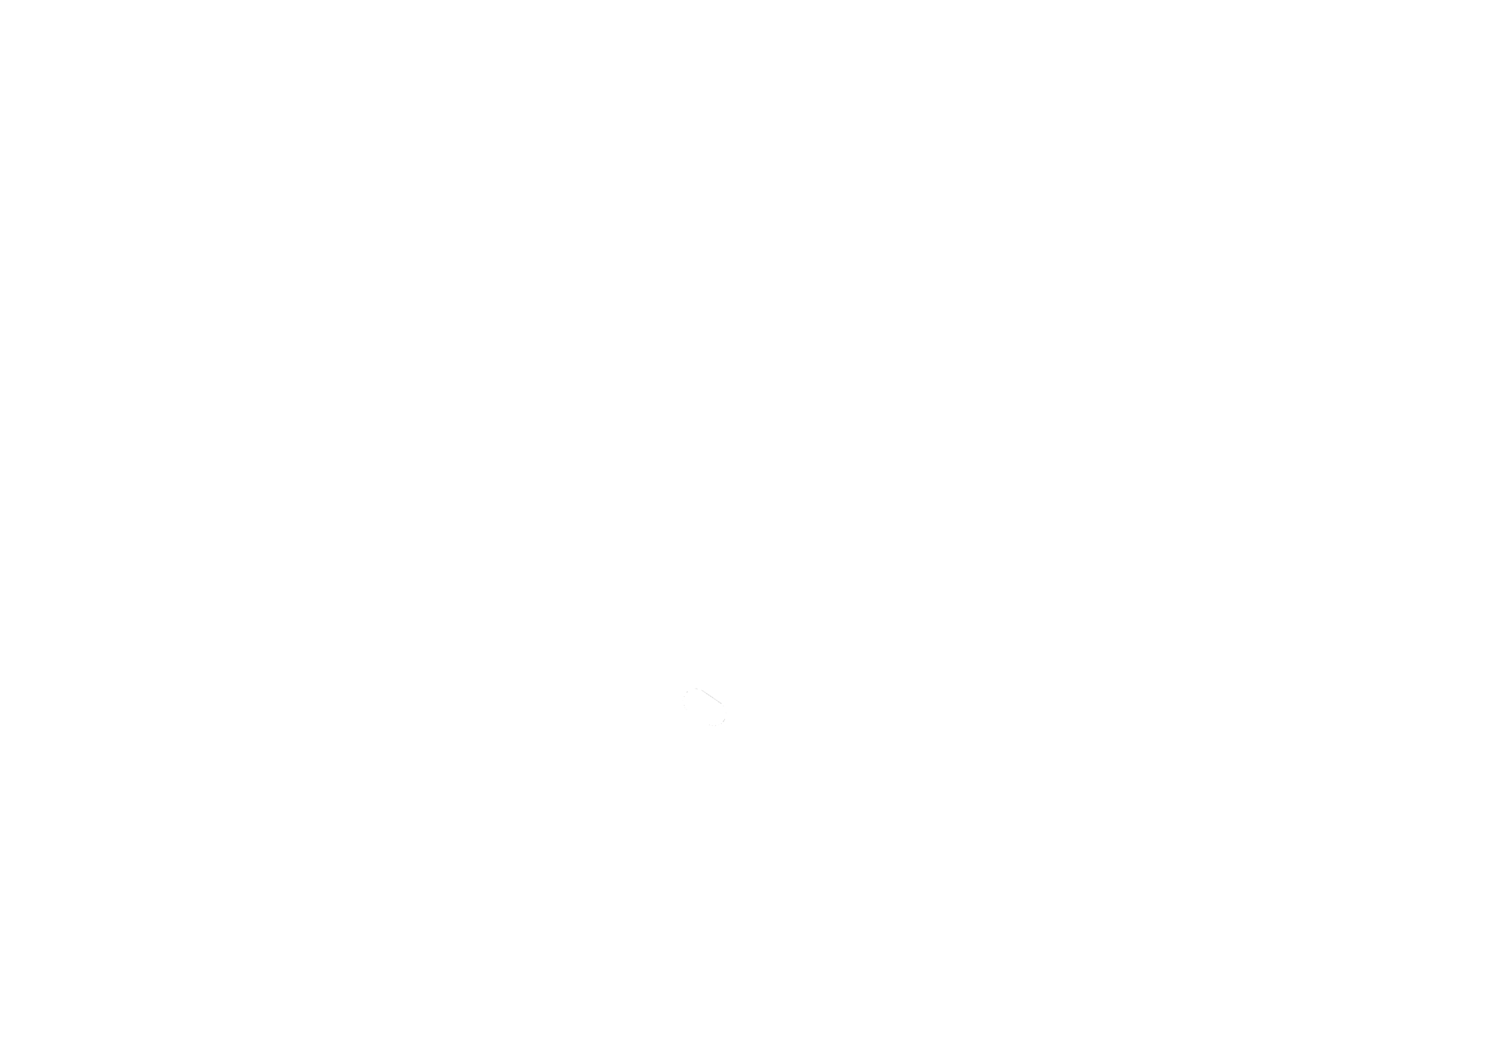 That Singapore Beer Project